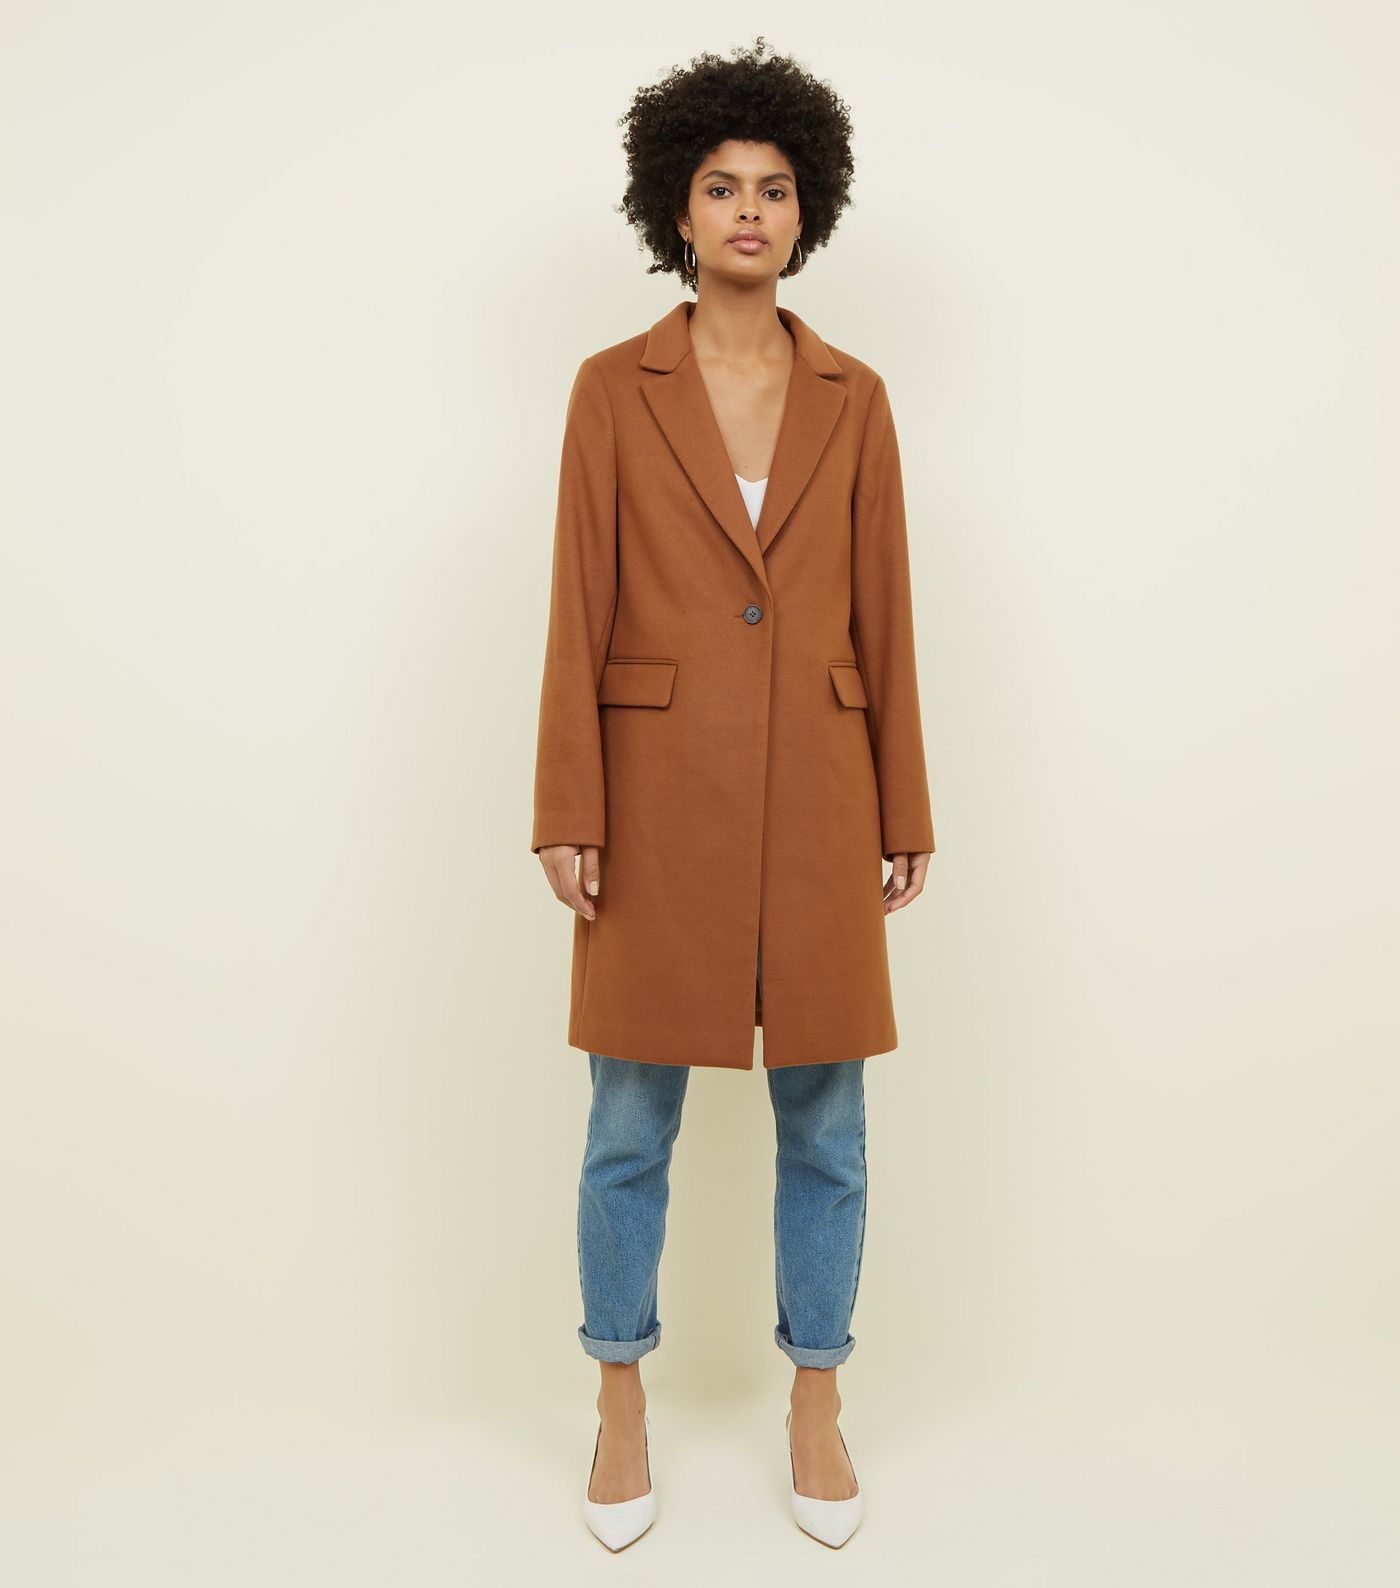 Tan Single Breasted Coat from New Look - Click Here a92b8890d